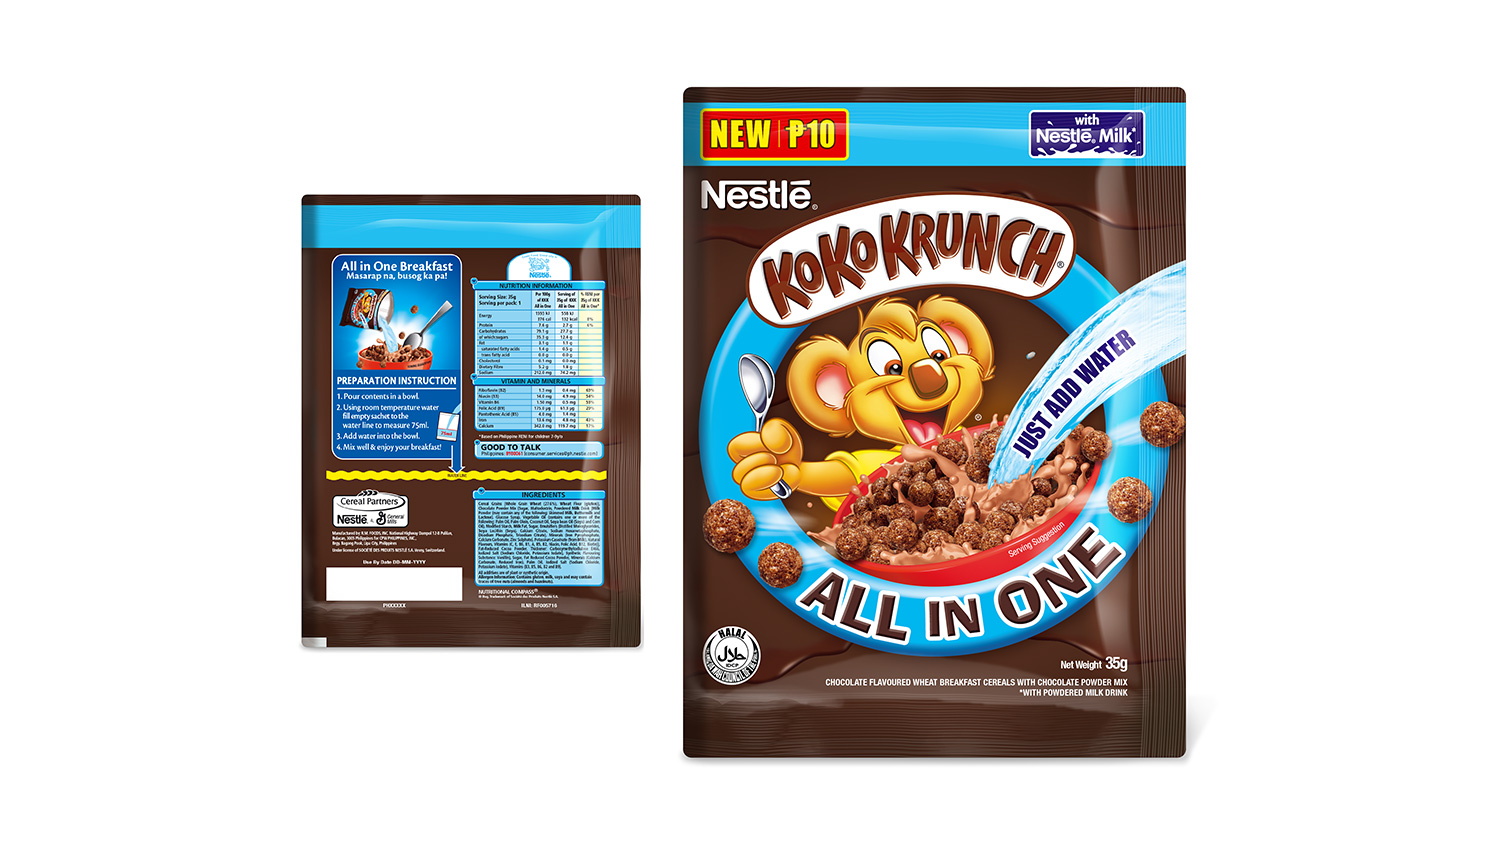 Koko crunch ap branding click here to see other projects ccuart Choice Image